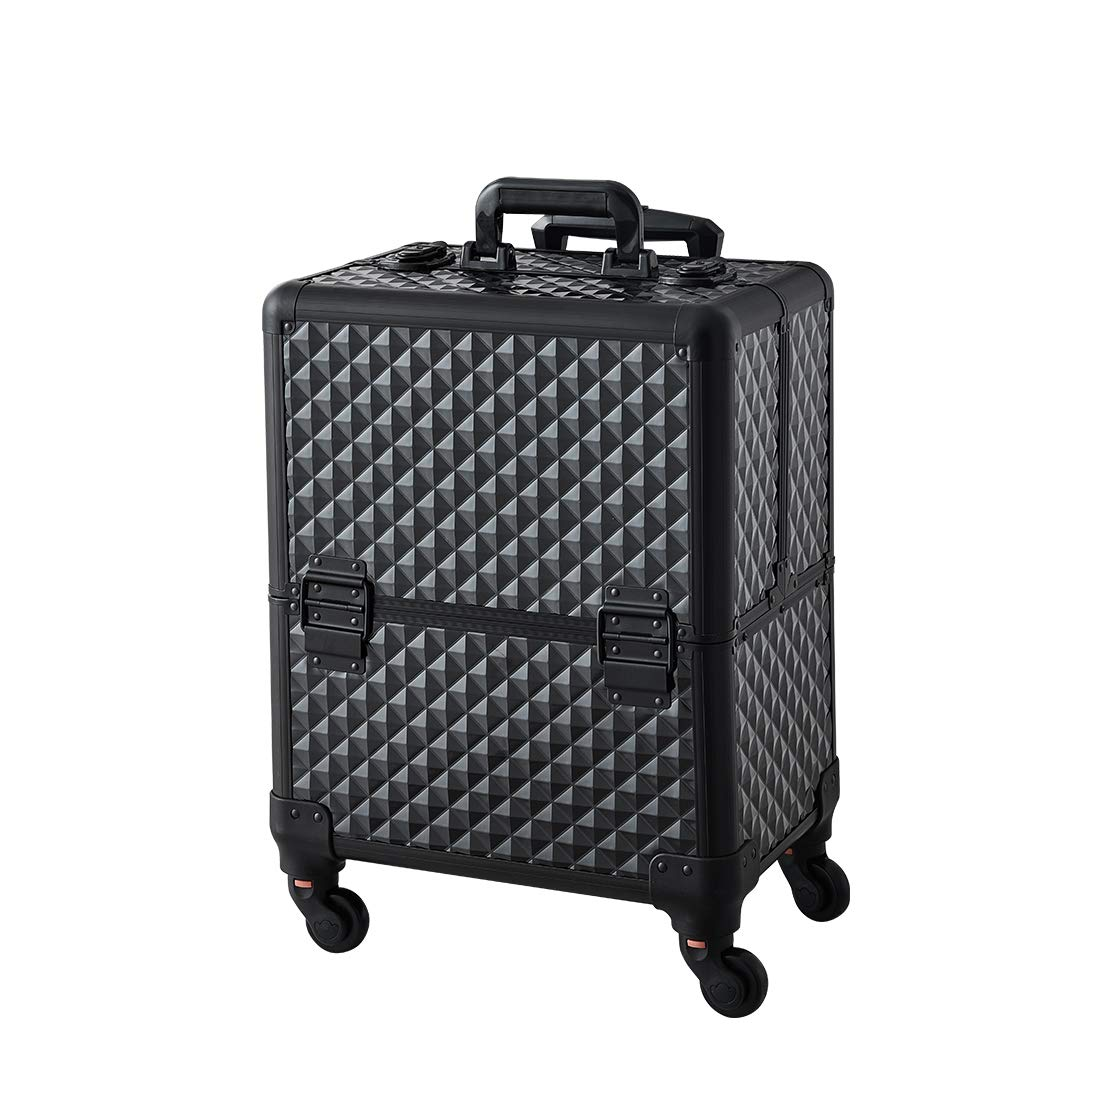 Makeup Case - Professional Folding Trays and Rolling Universal Wheels Cosmetic Storage Organizer with Aluminum Frame Black Diamond Pattern by Beauty Collector